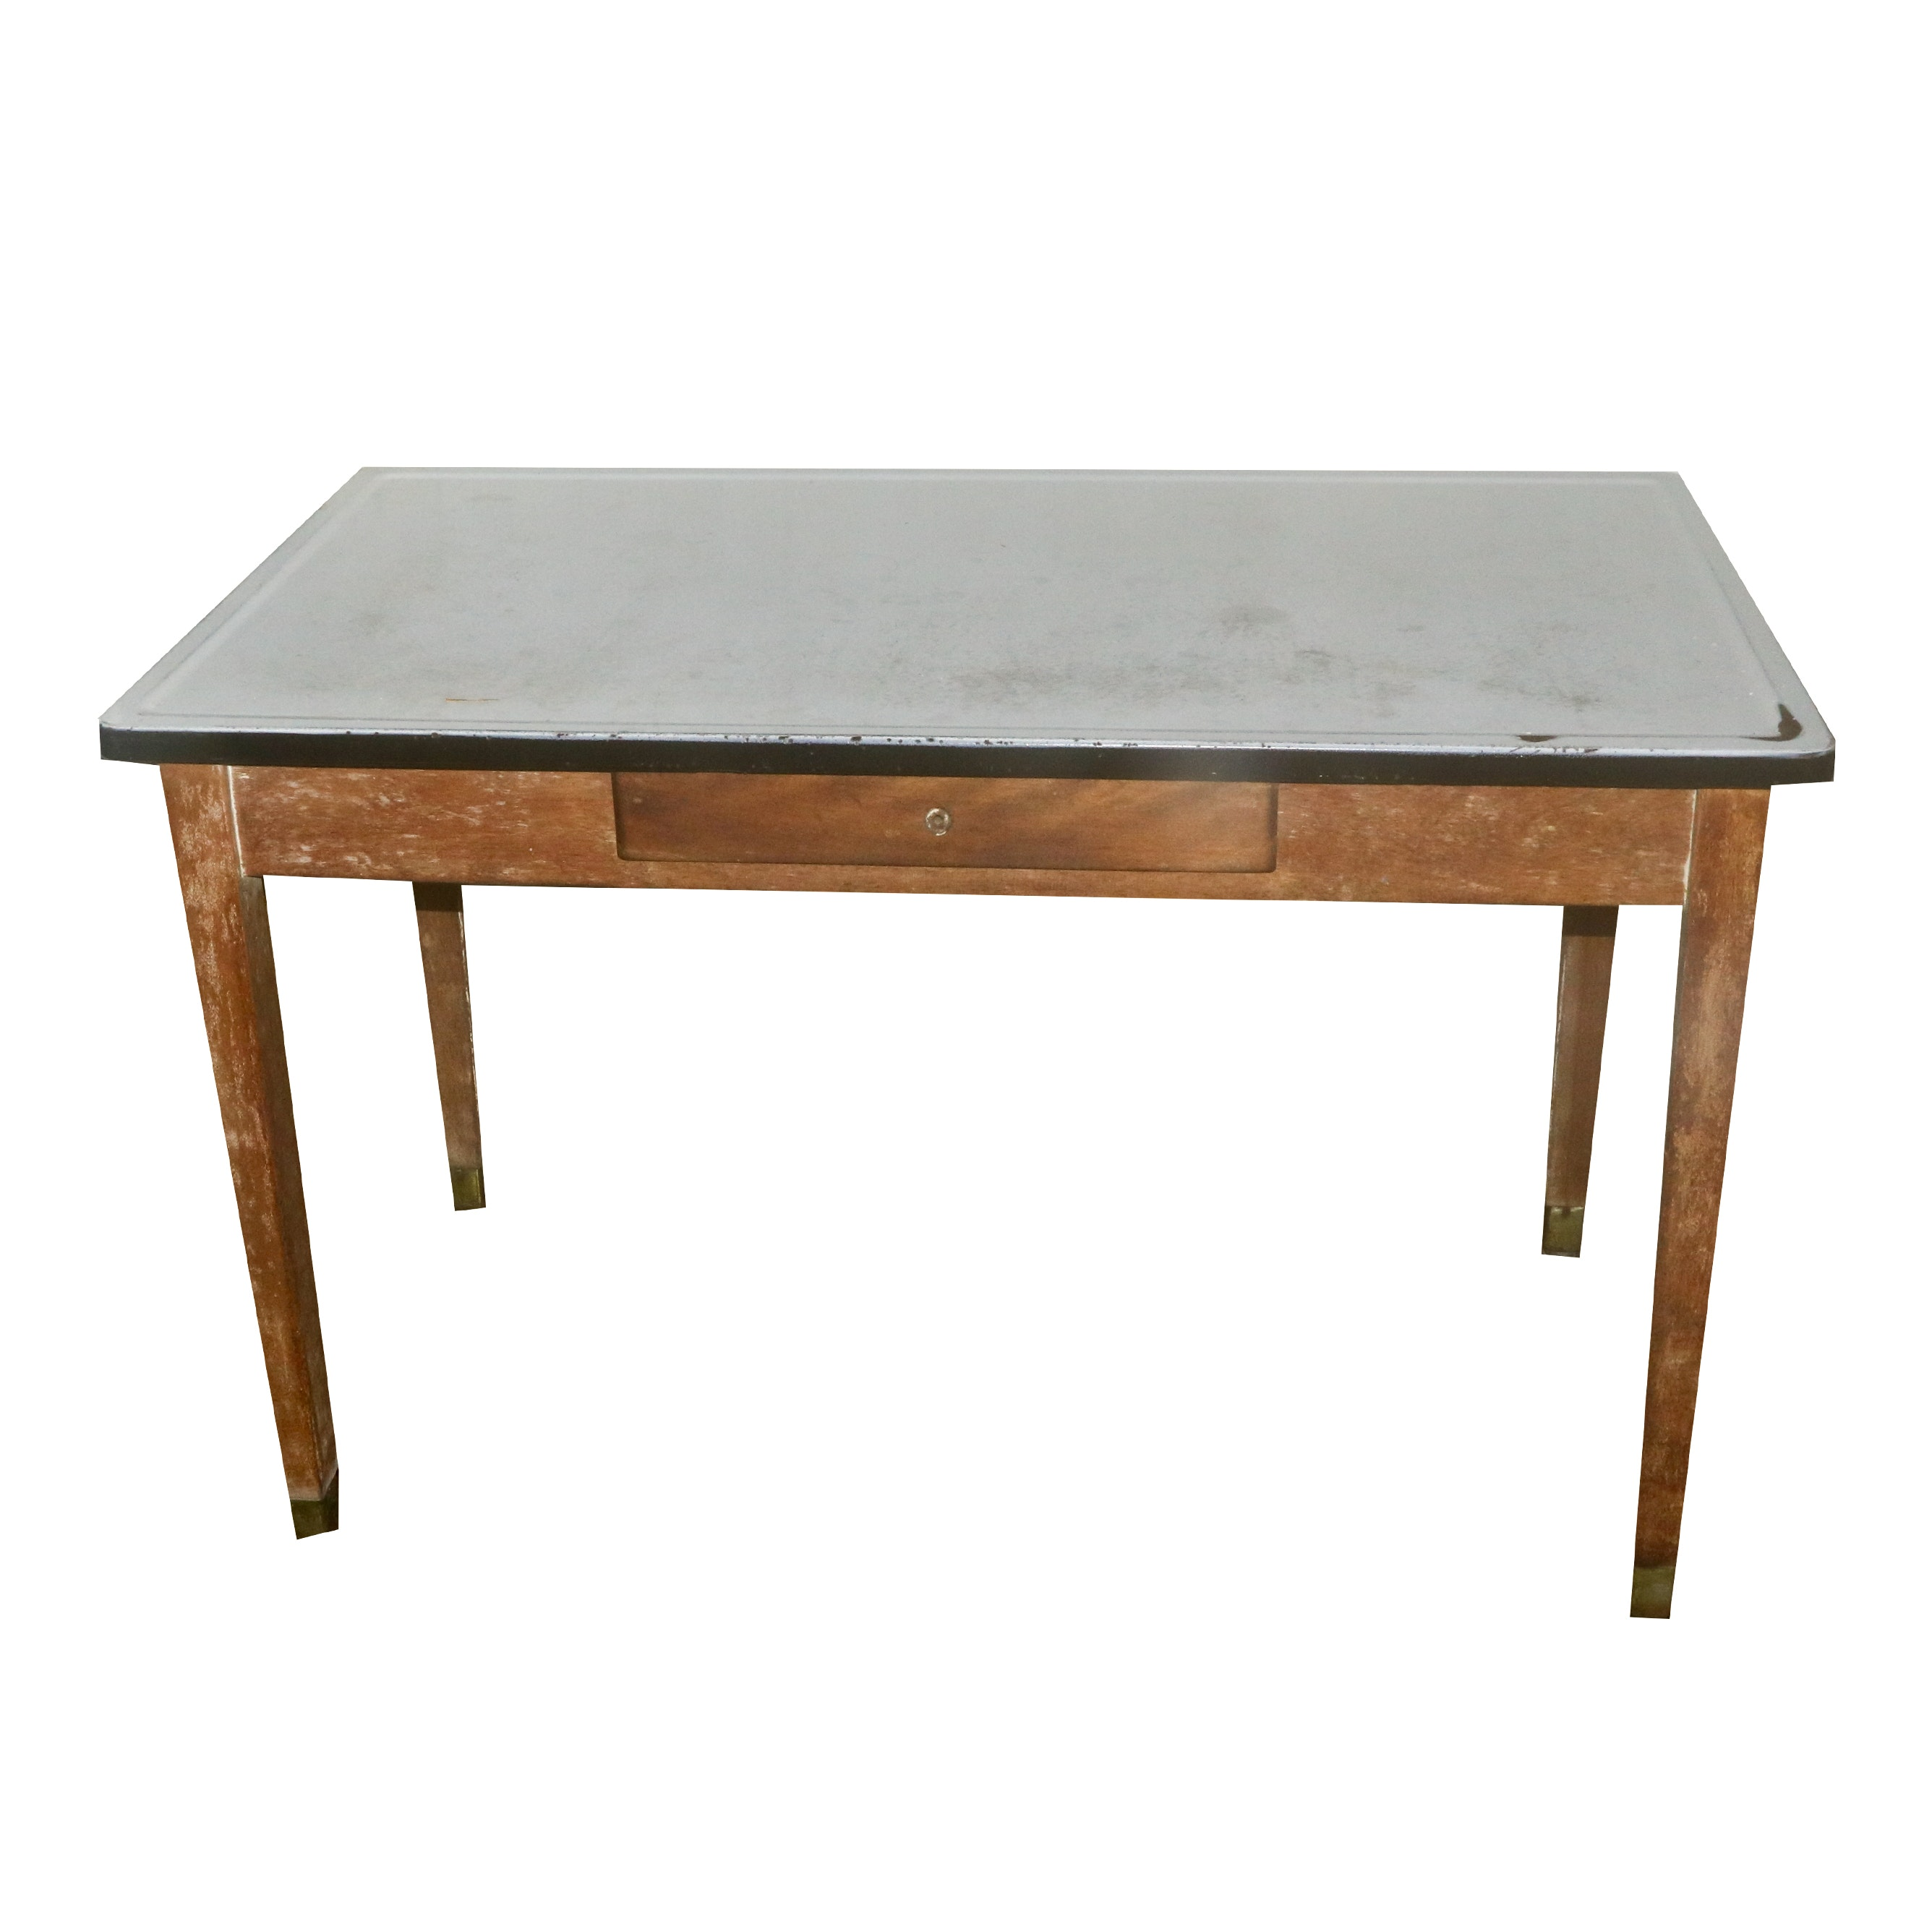 Vintage Kitchen Work Table With Enamel Top